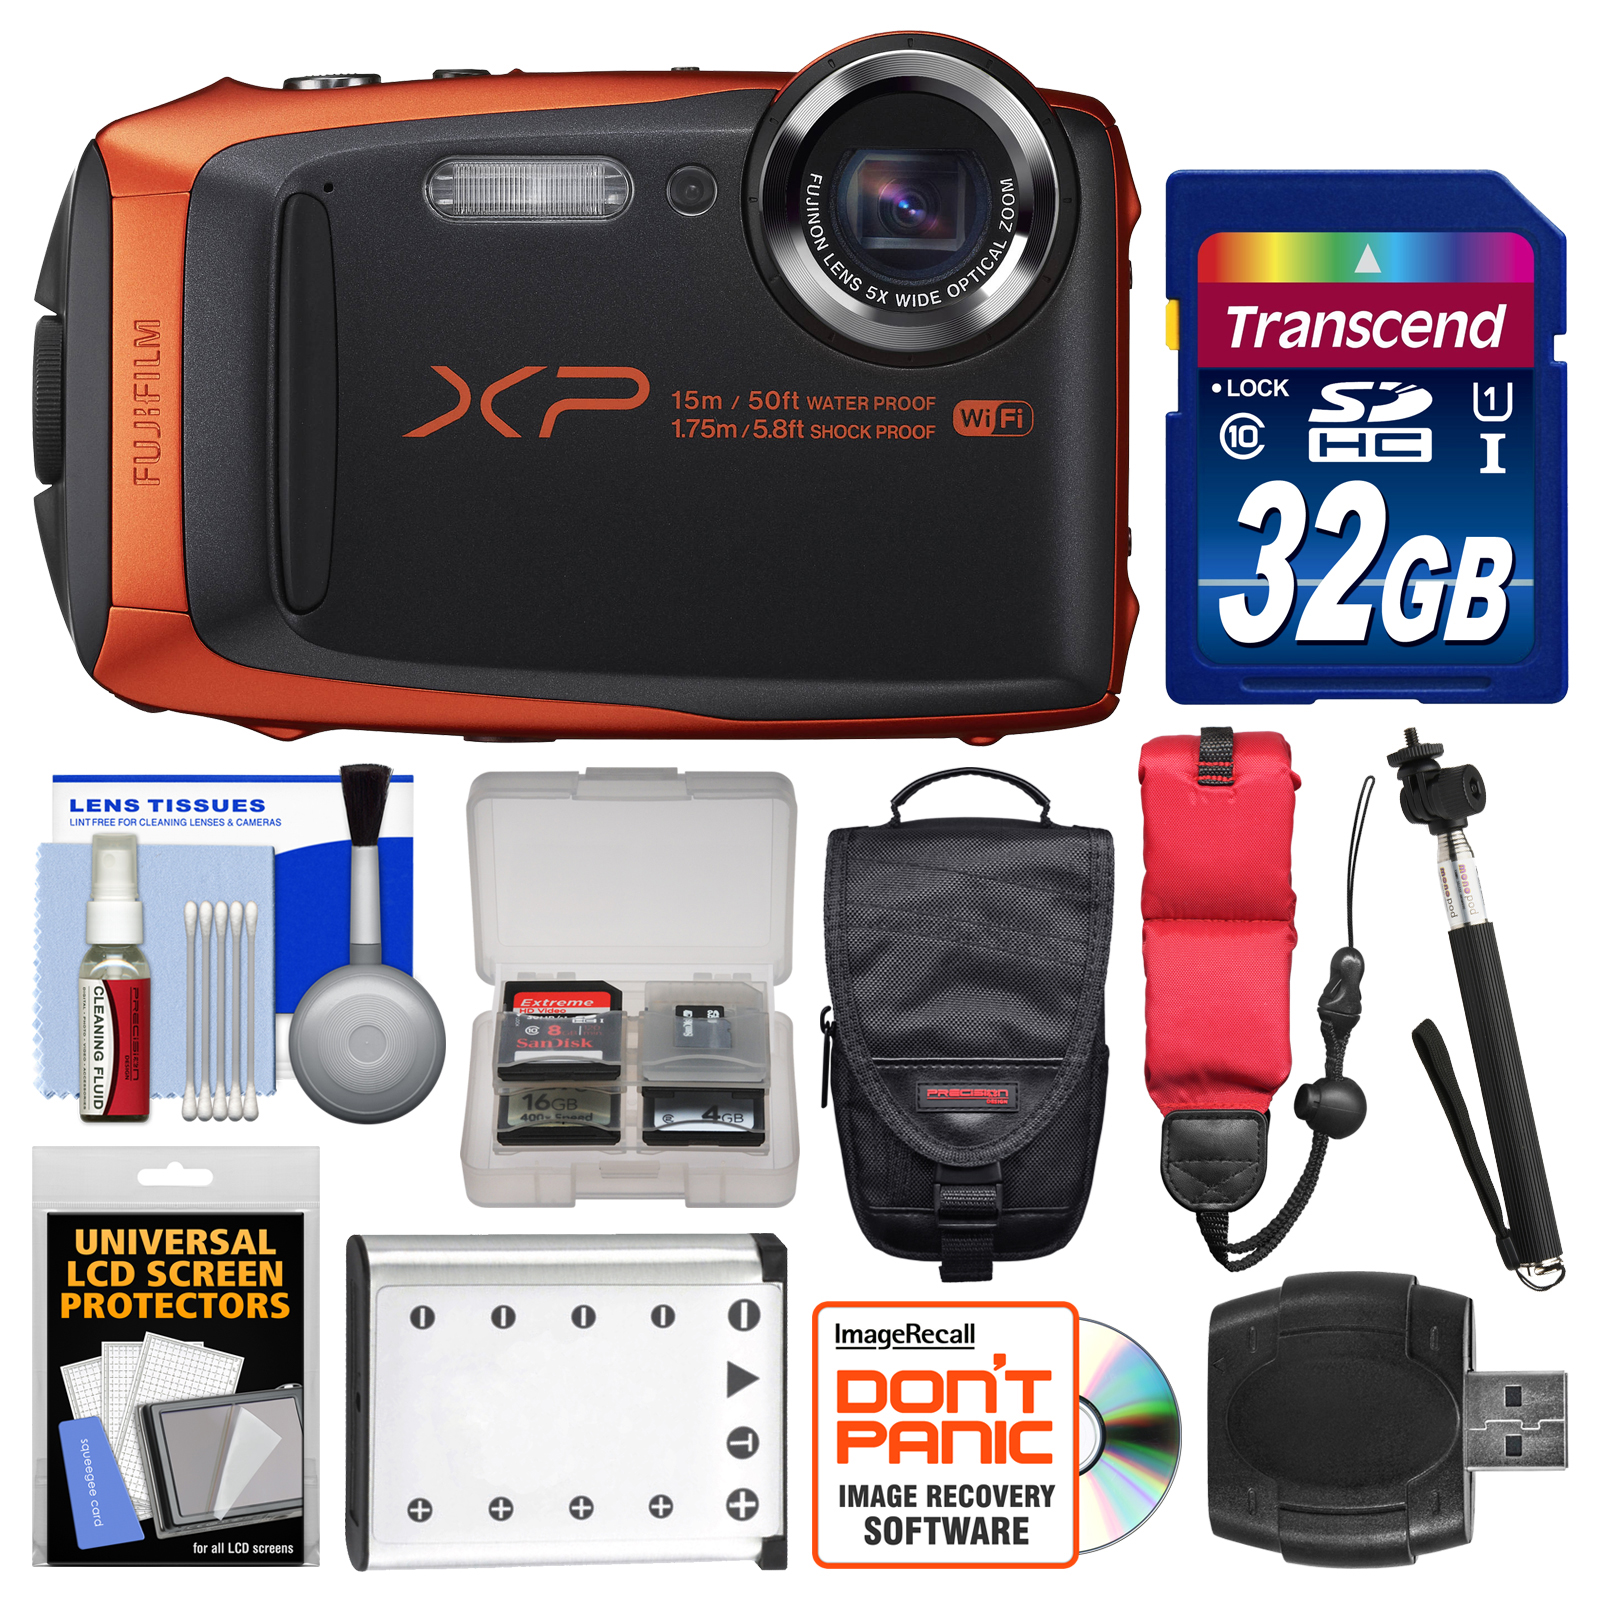 Fujifilm FinePix XP90 Shock & Waterproof Wi-Fi Digital Camera (Orange) with 32GB Card + Case + Battery + Selfie Stick + Float Strap + Kit